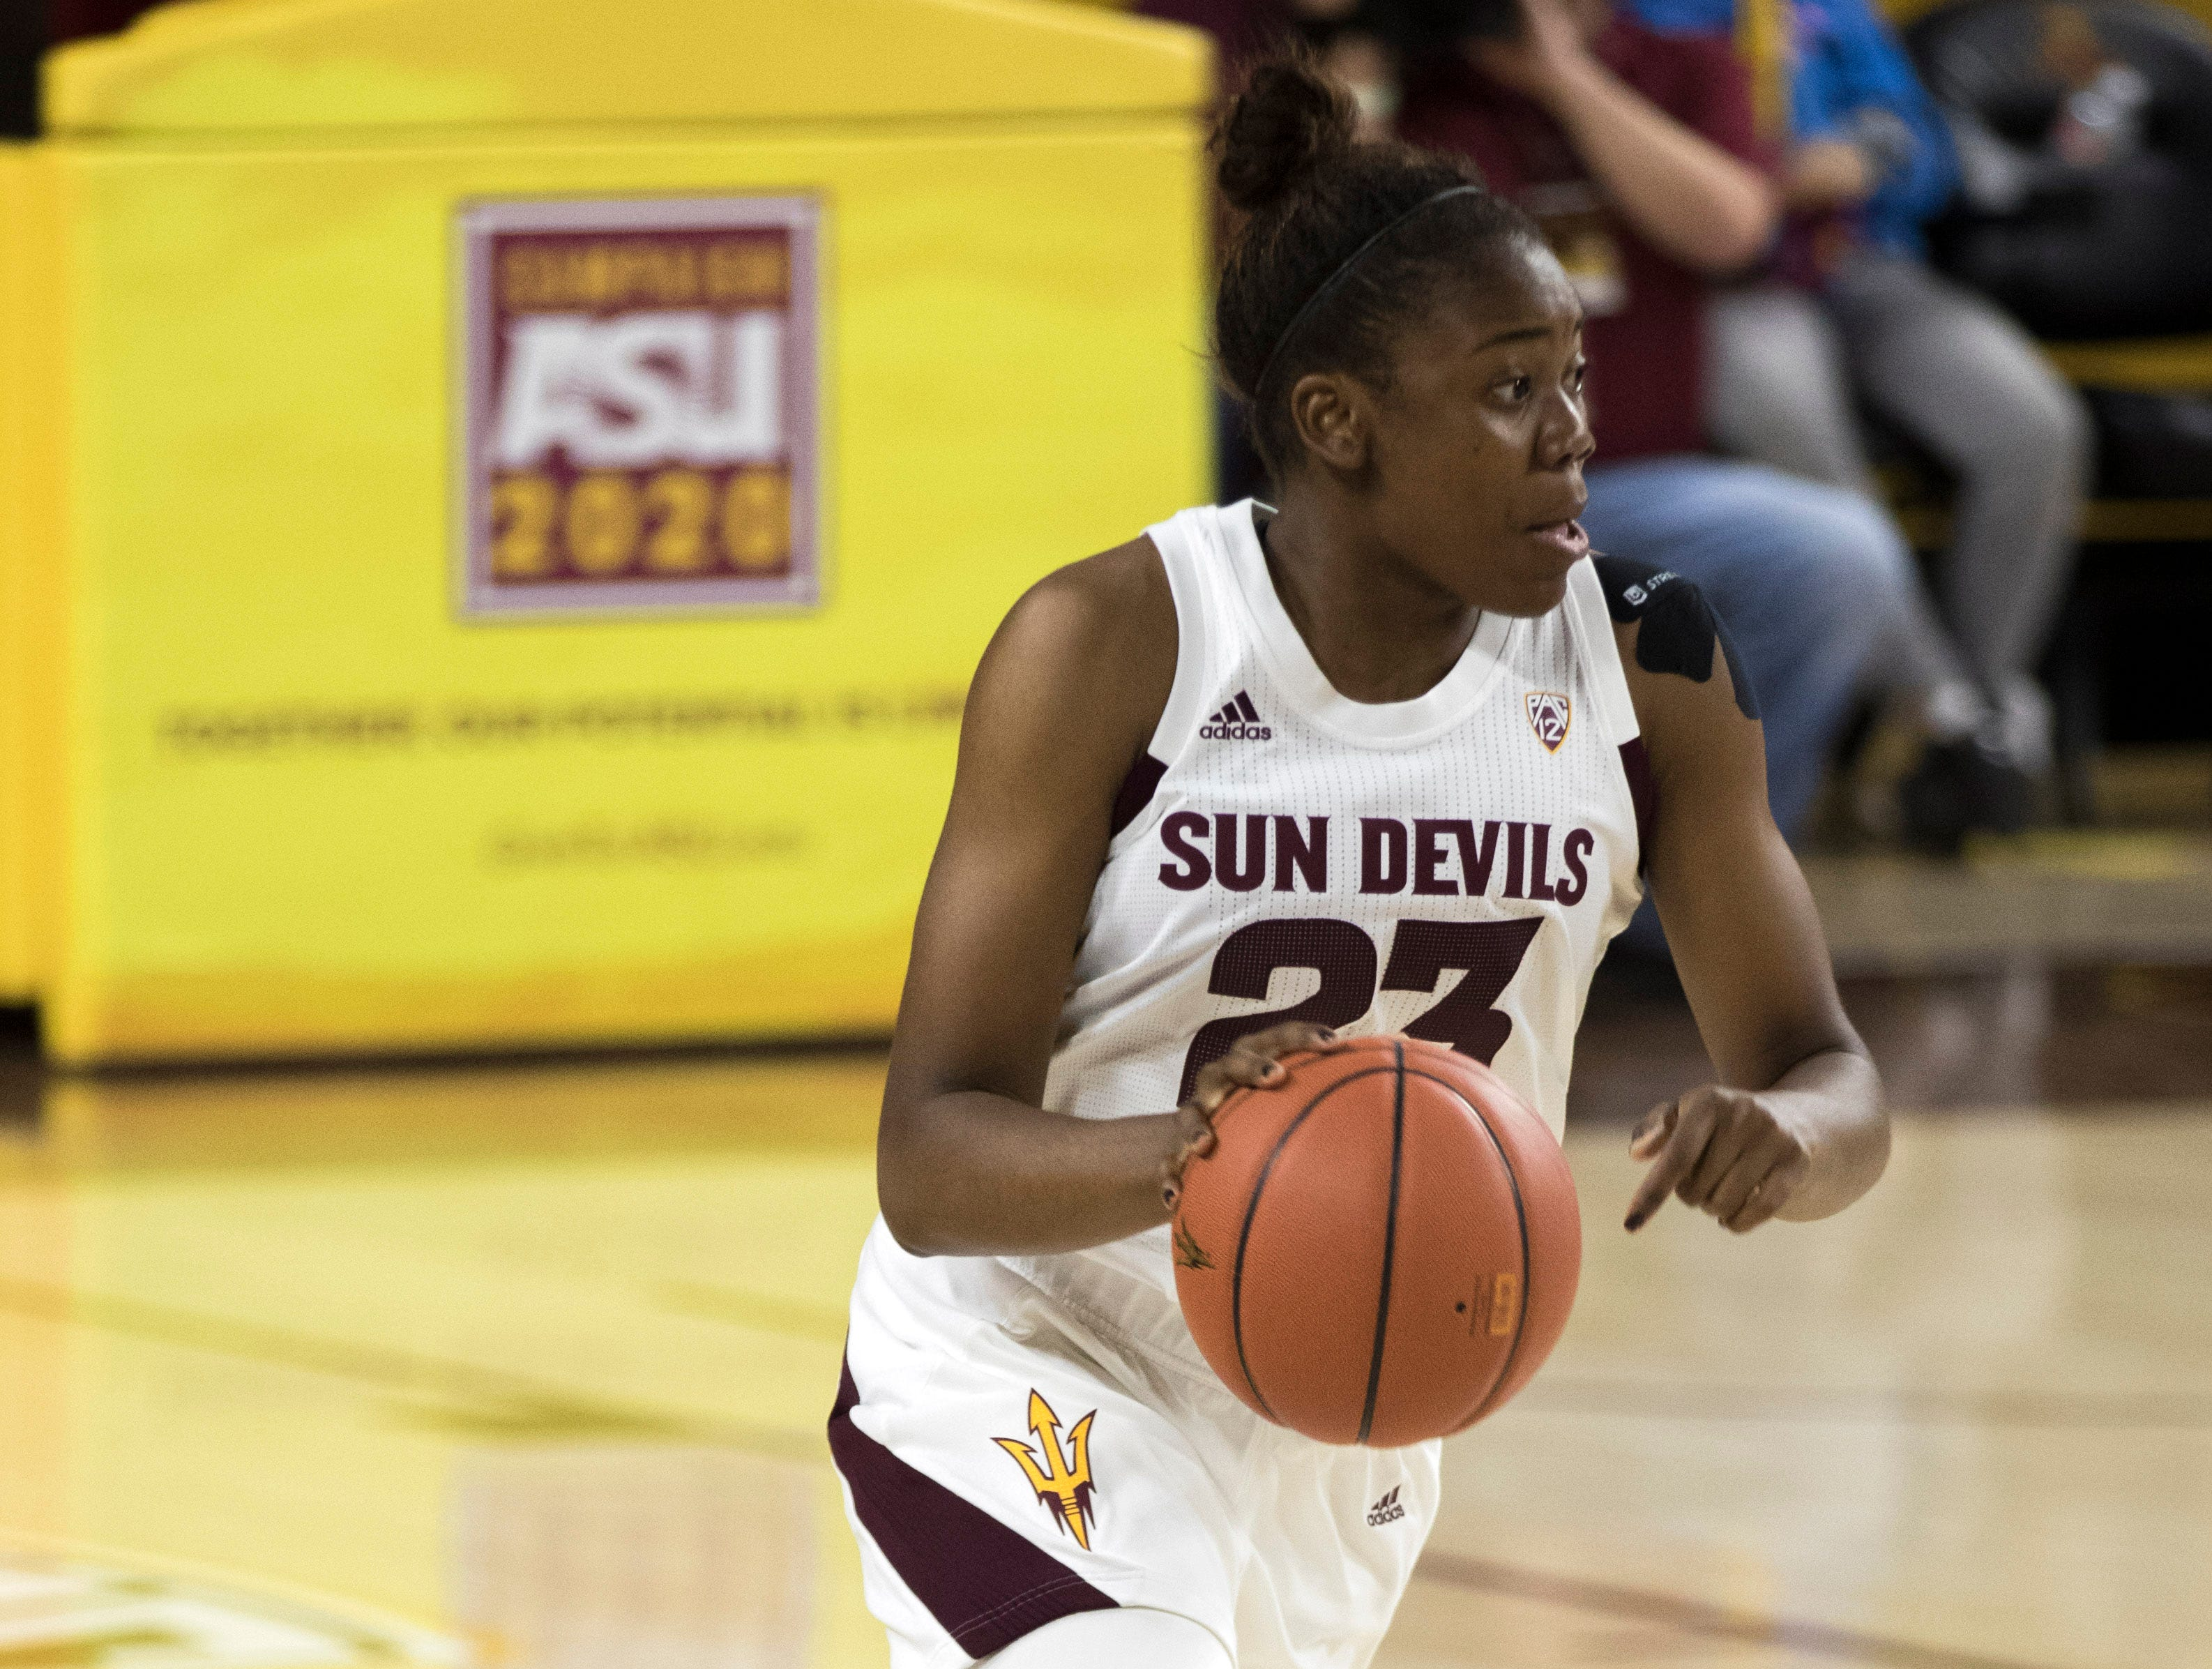 ASU FILE- Arizona State University's Iris Mbulito against Southern during the first half of their game in Tempe, Friday, Dec. 7, 2018. Darryl Webb/Special for the Republic